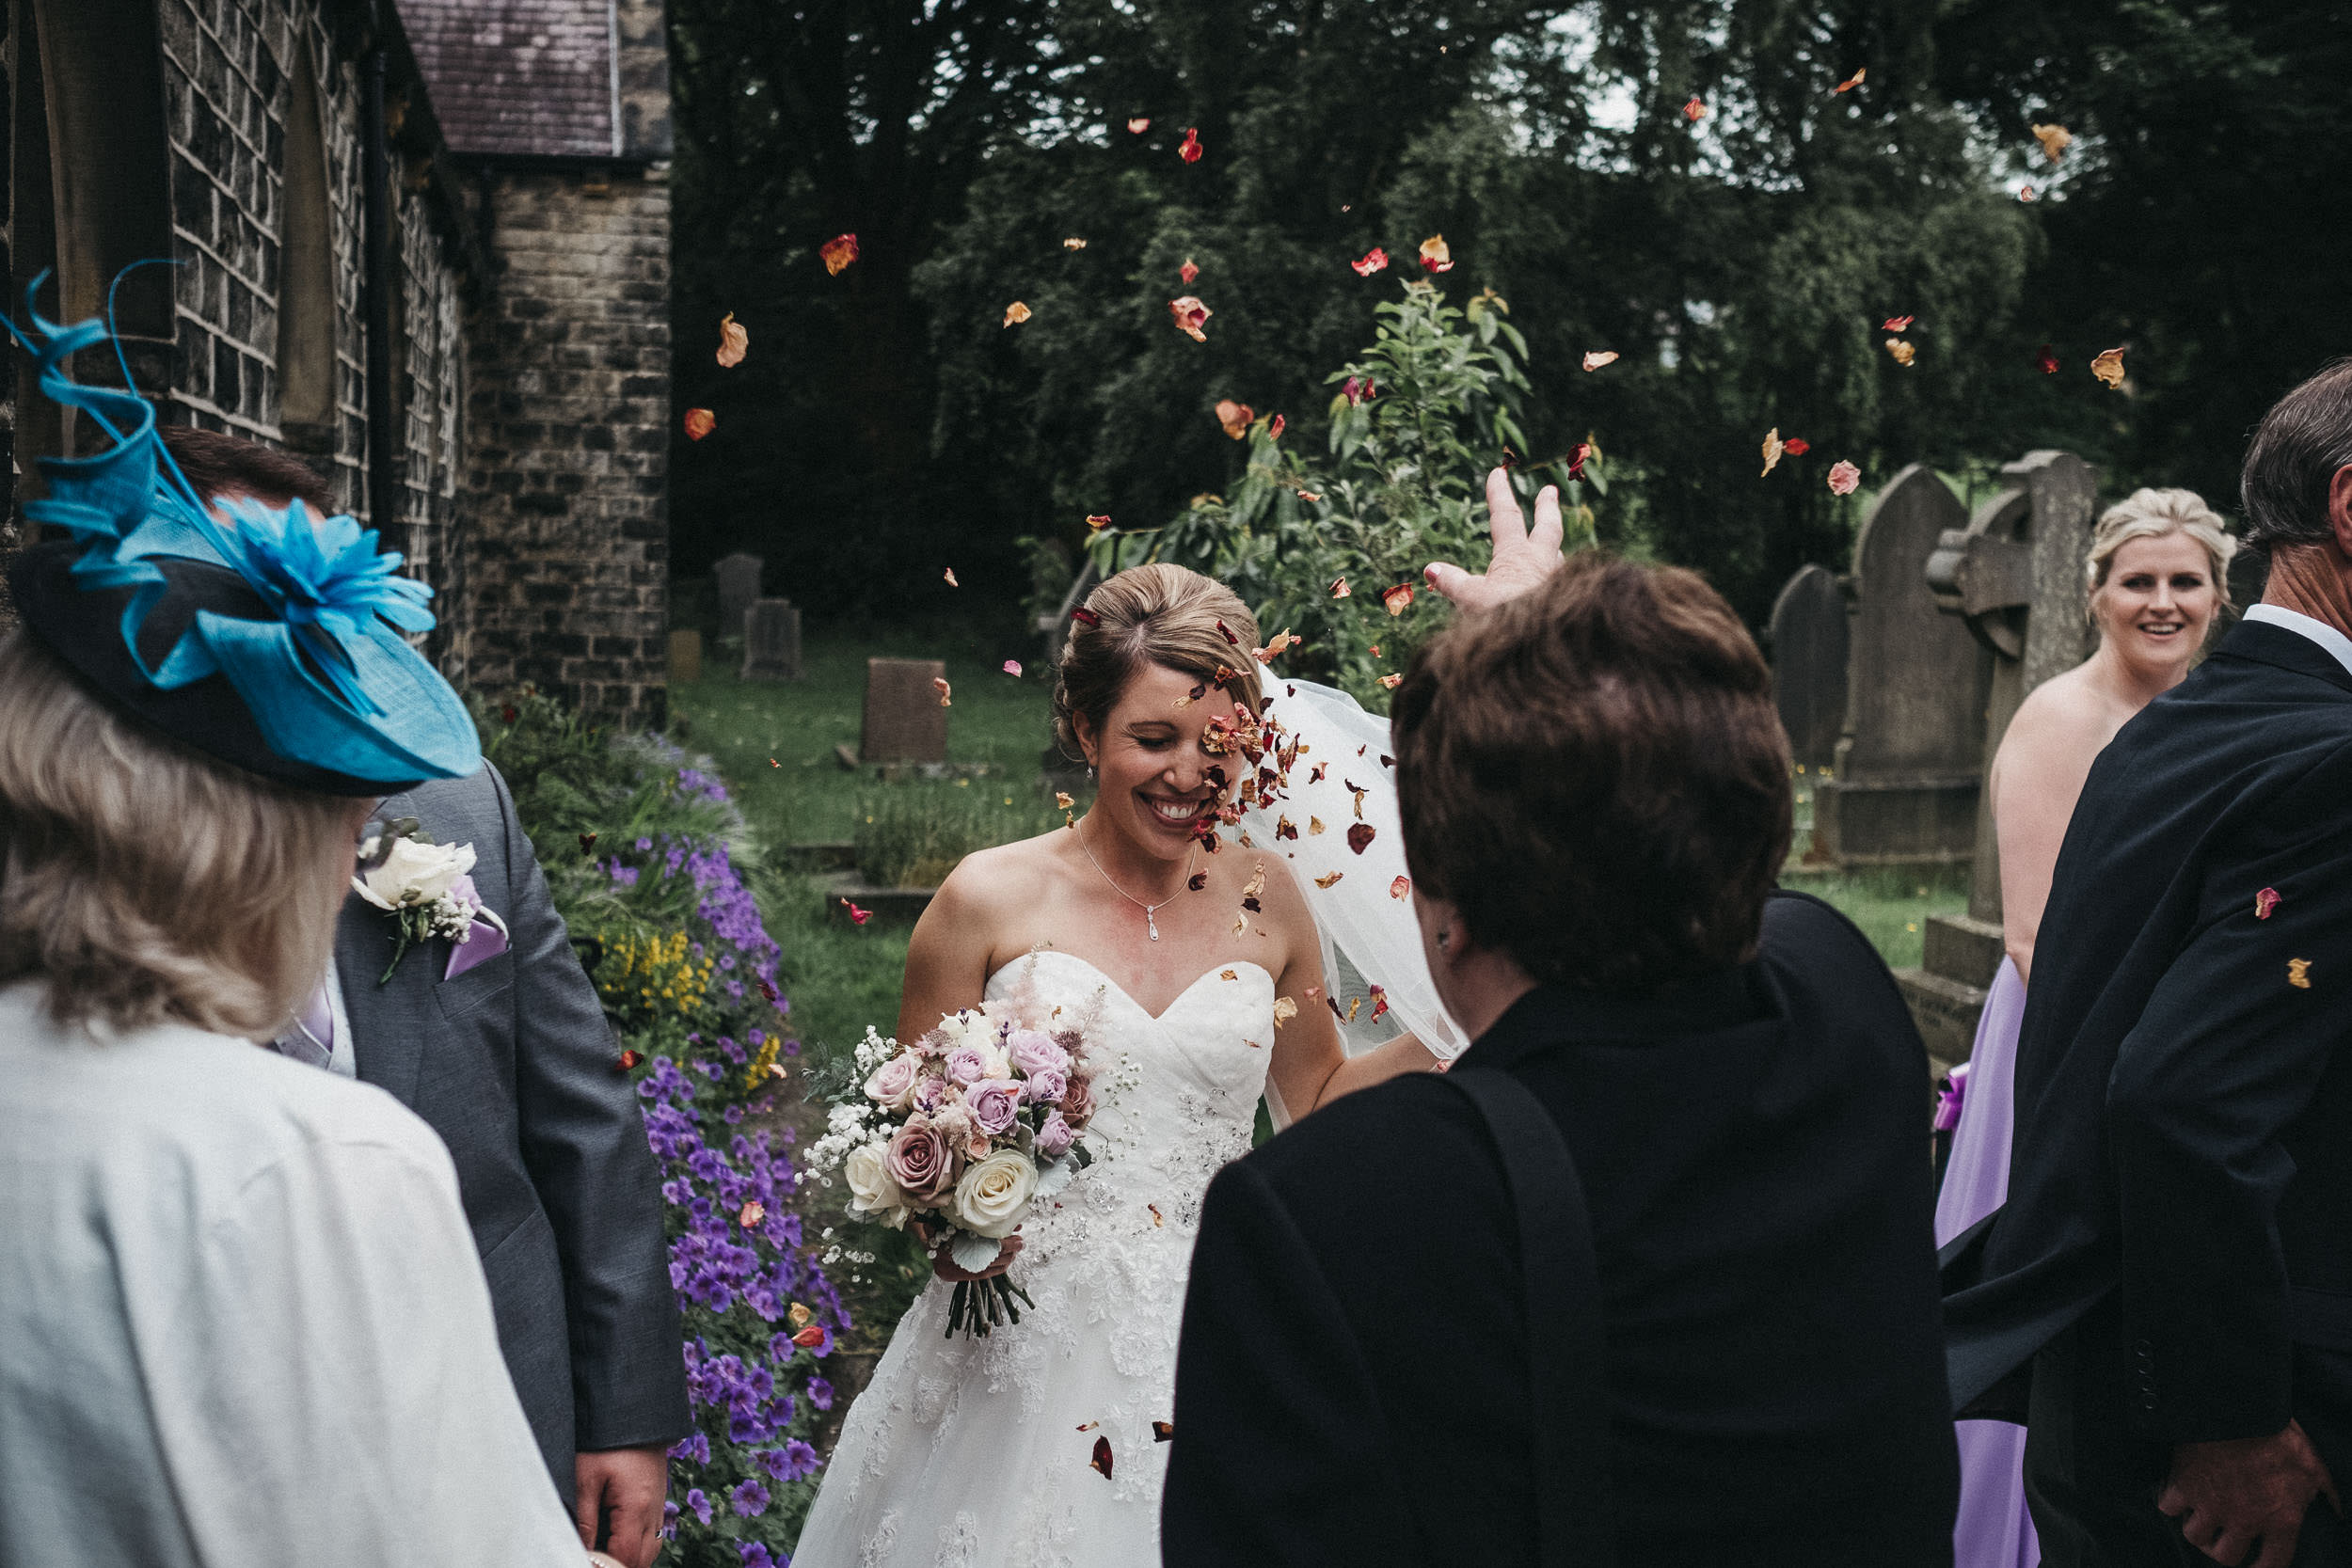 Funny photo showing wedding guest throws confetti in bride's face